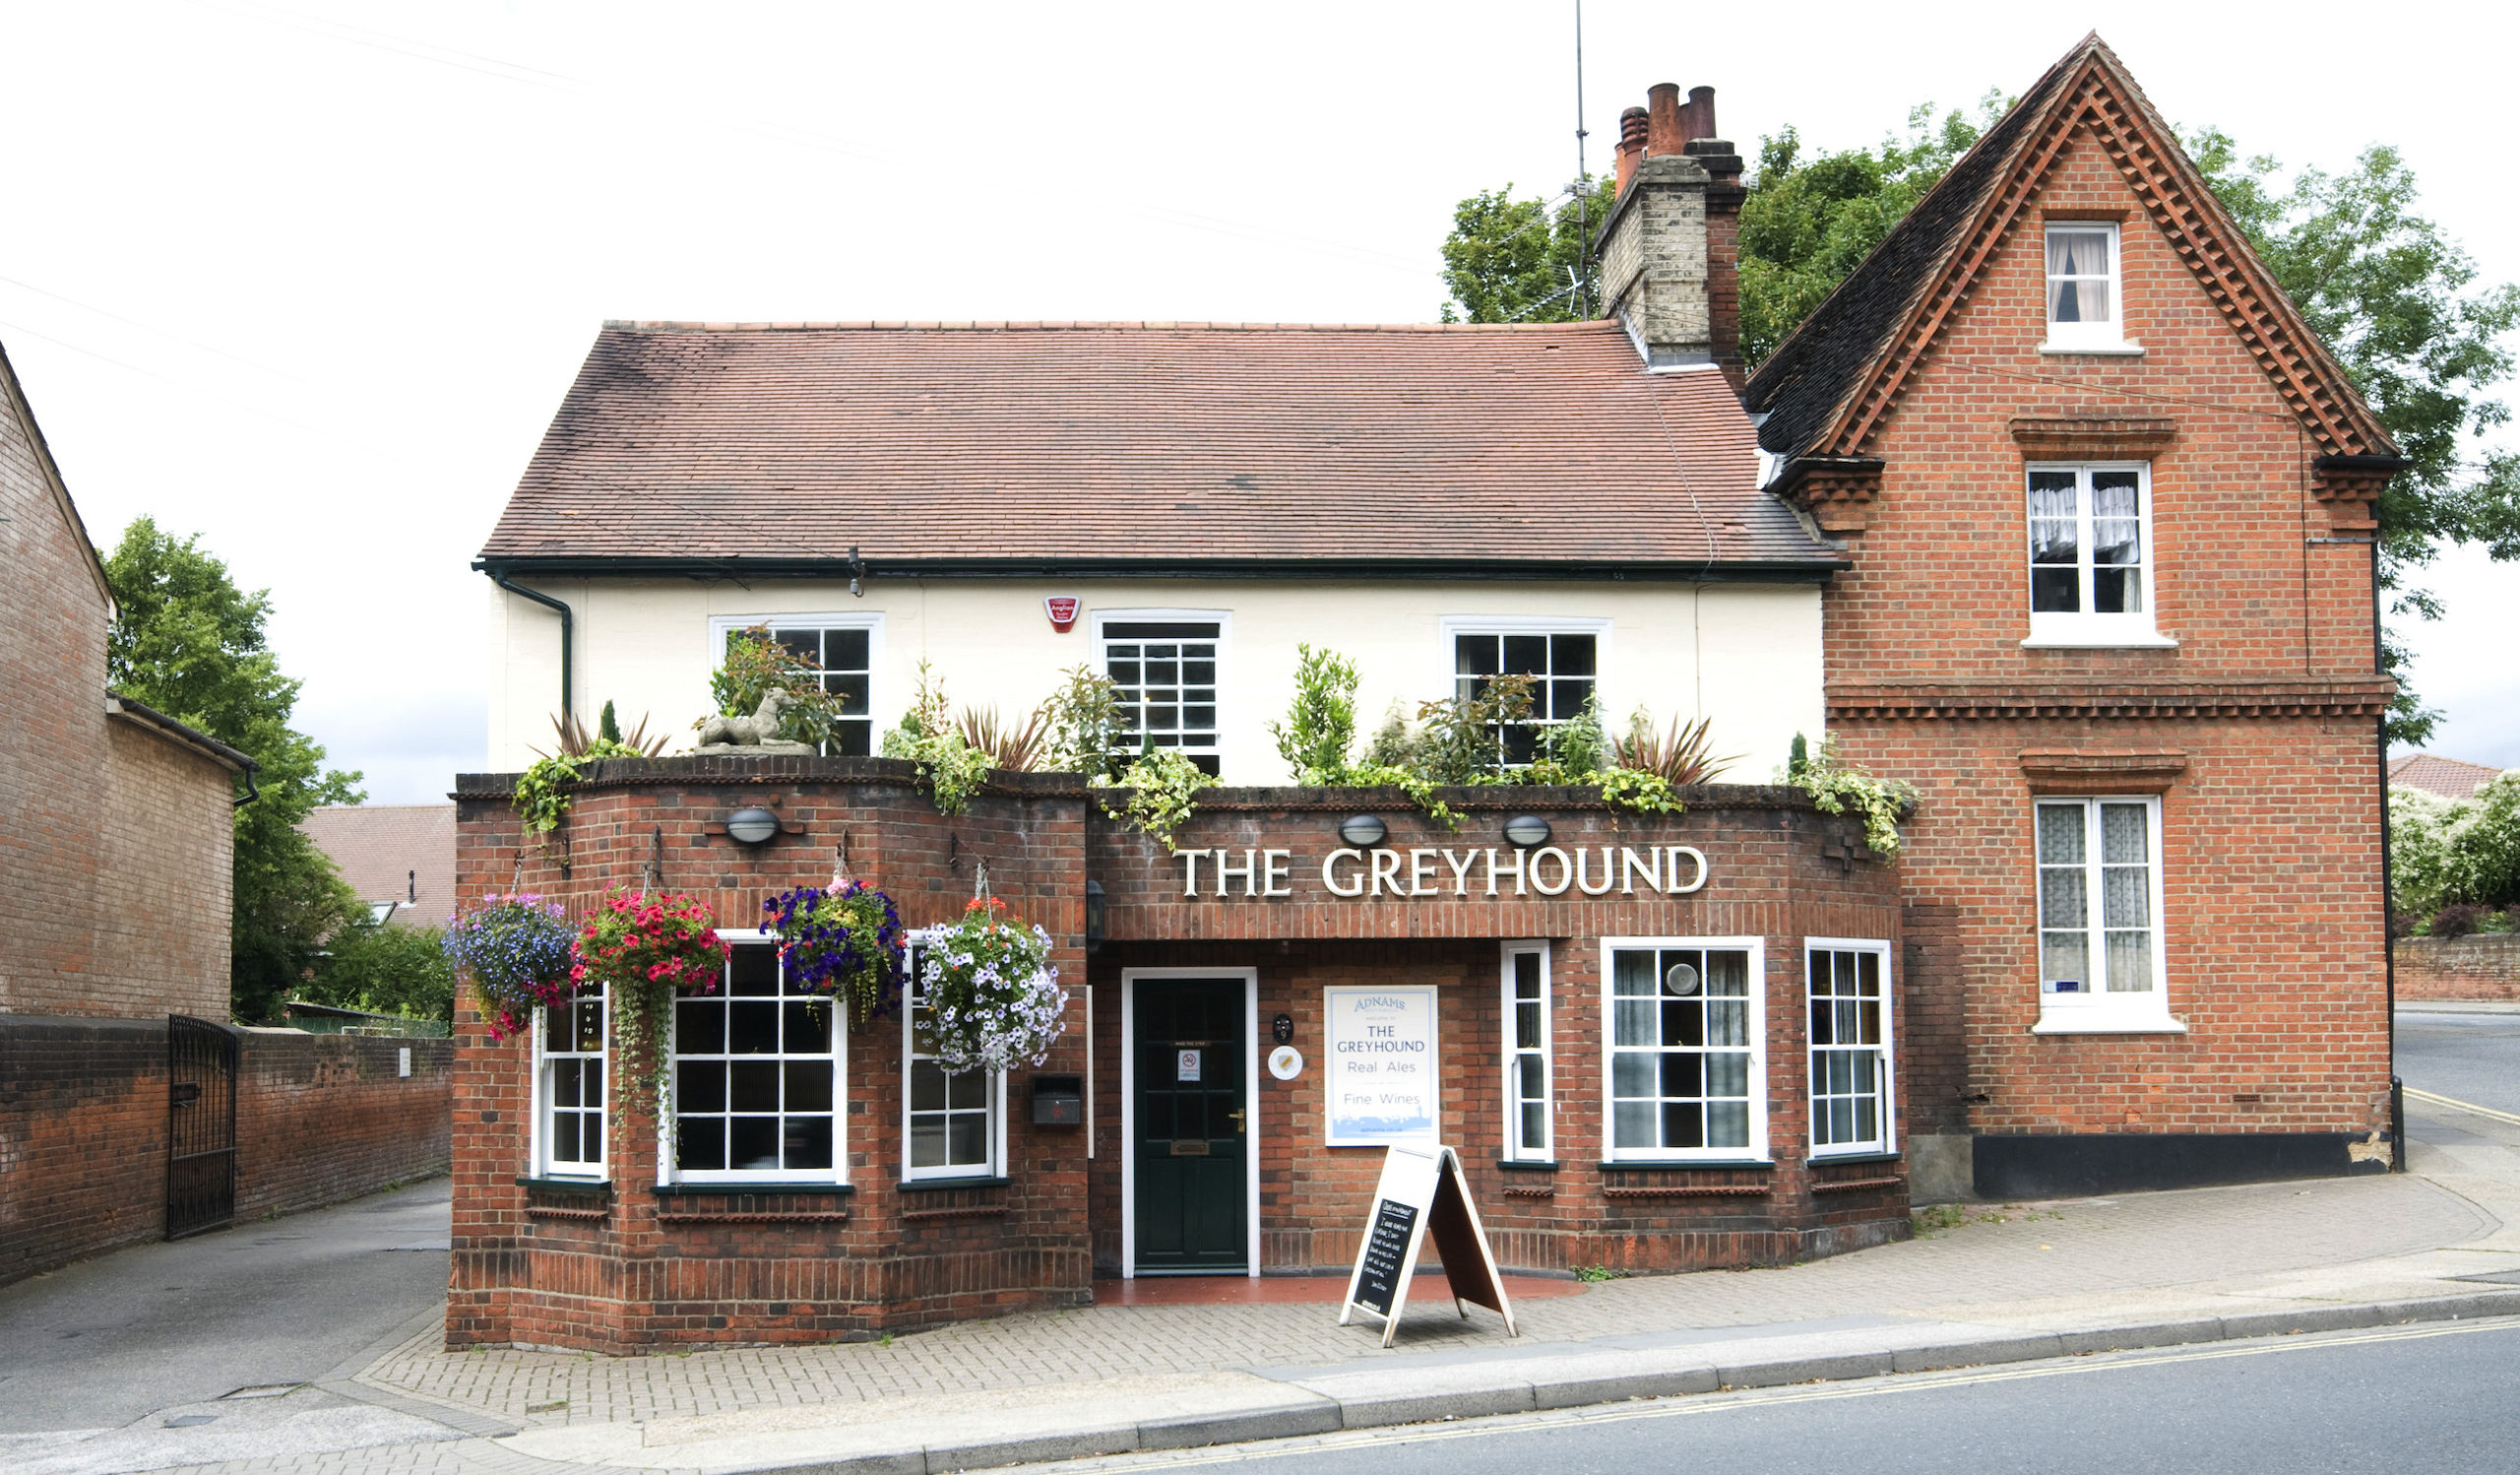 The Greyhound is open again on July 4